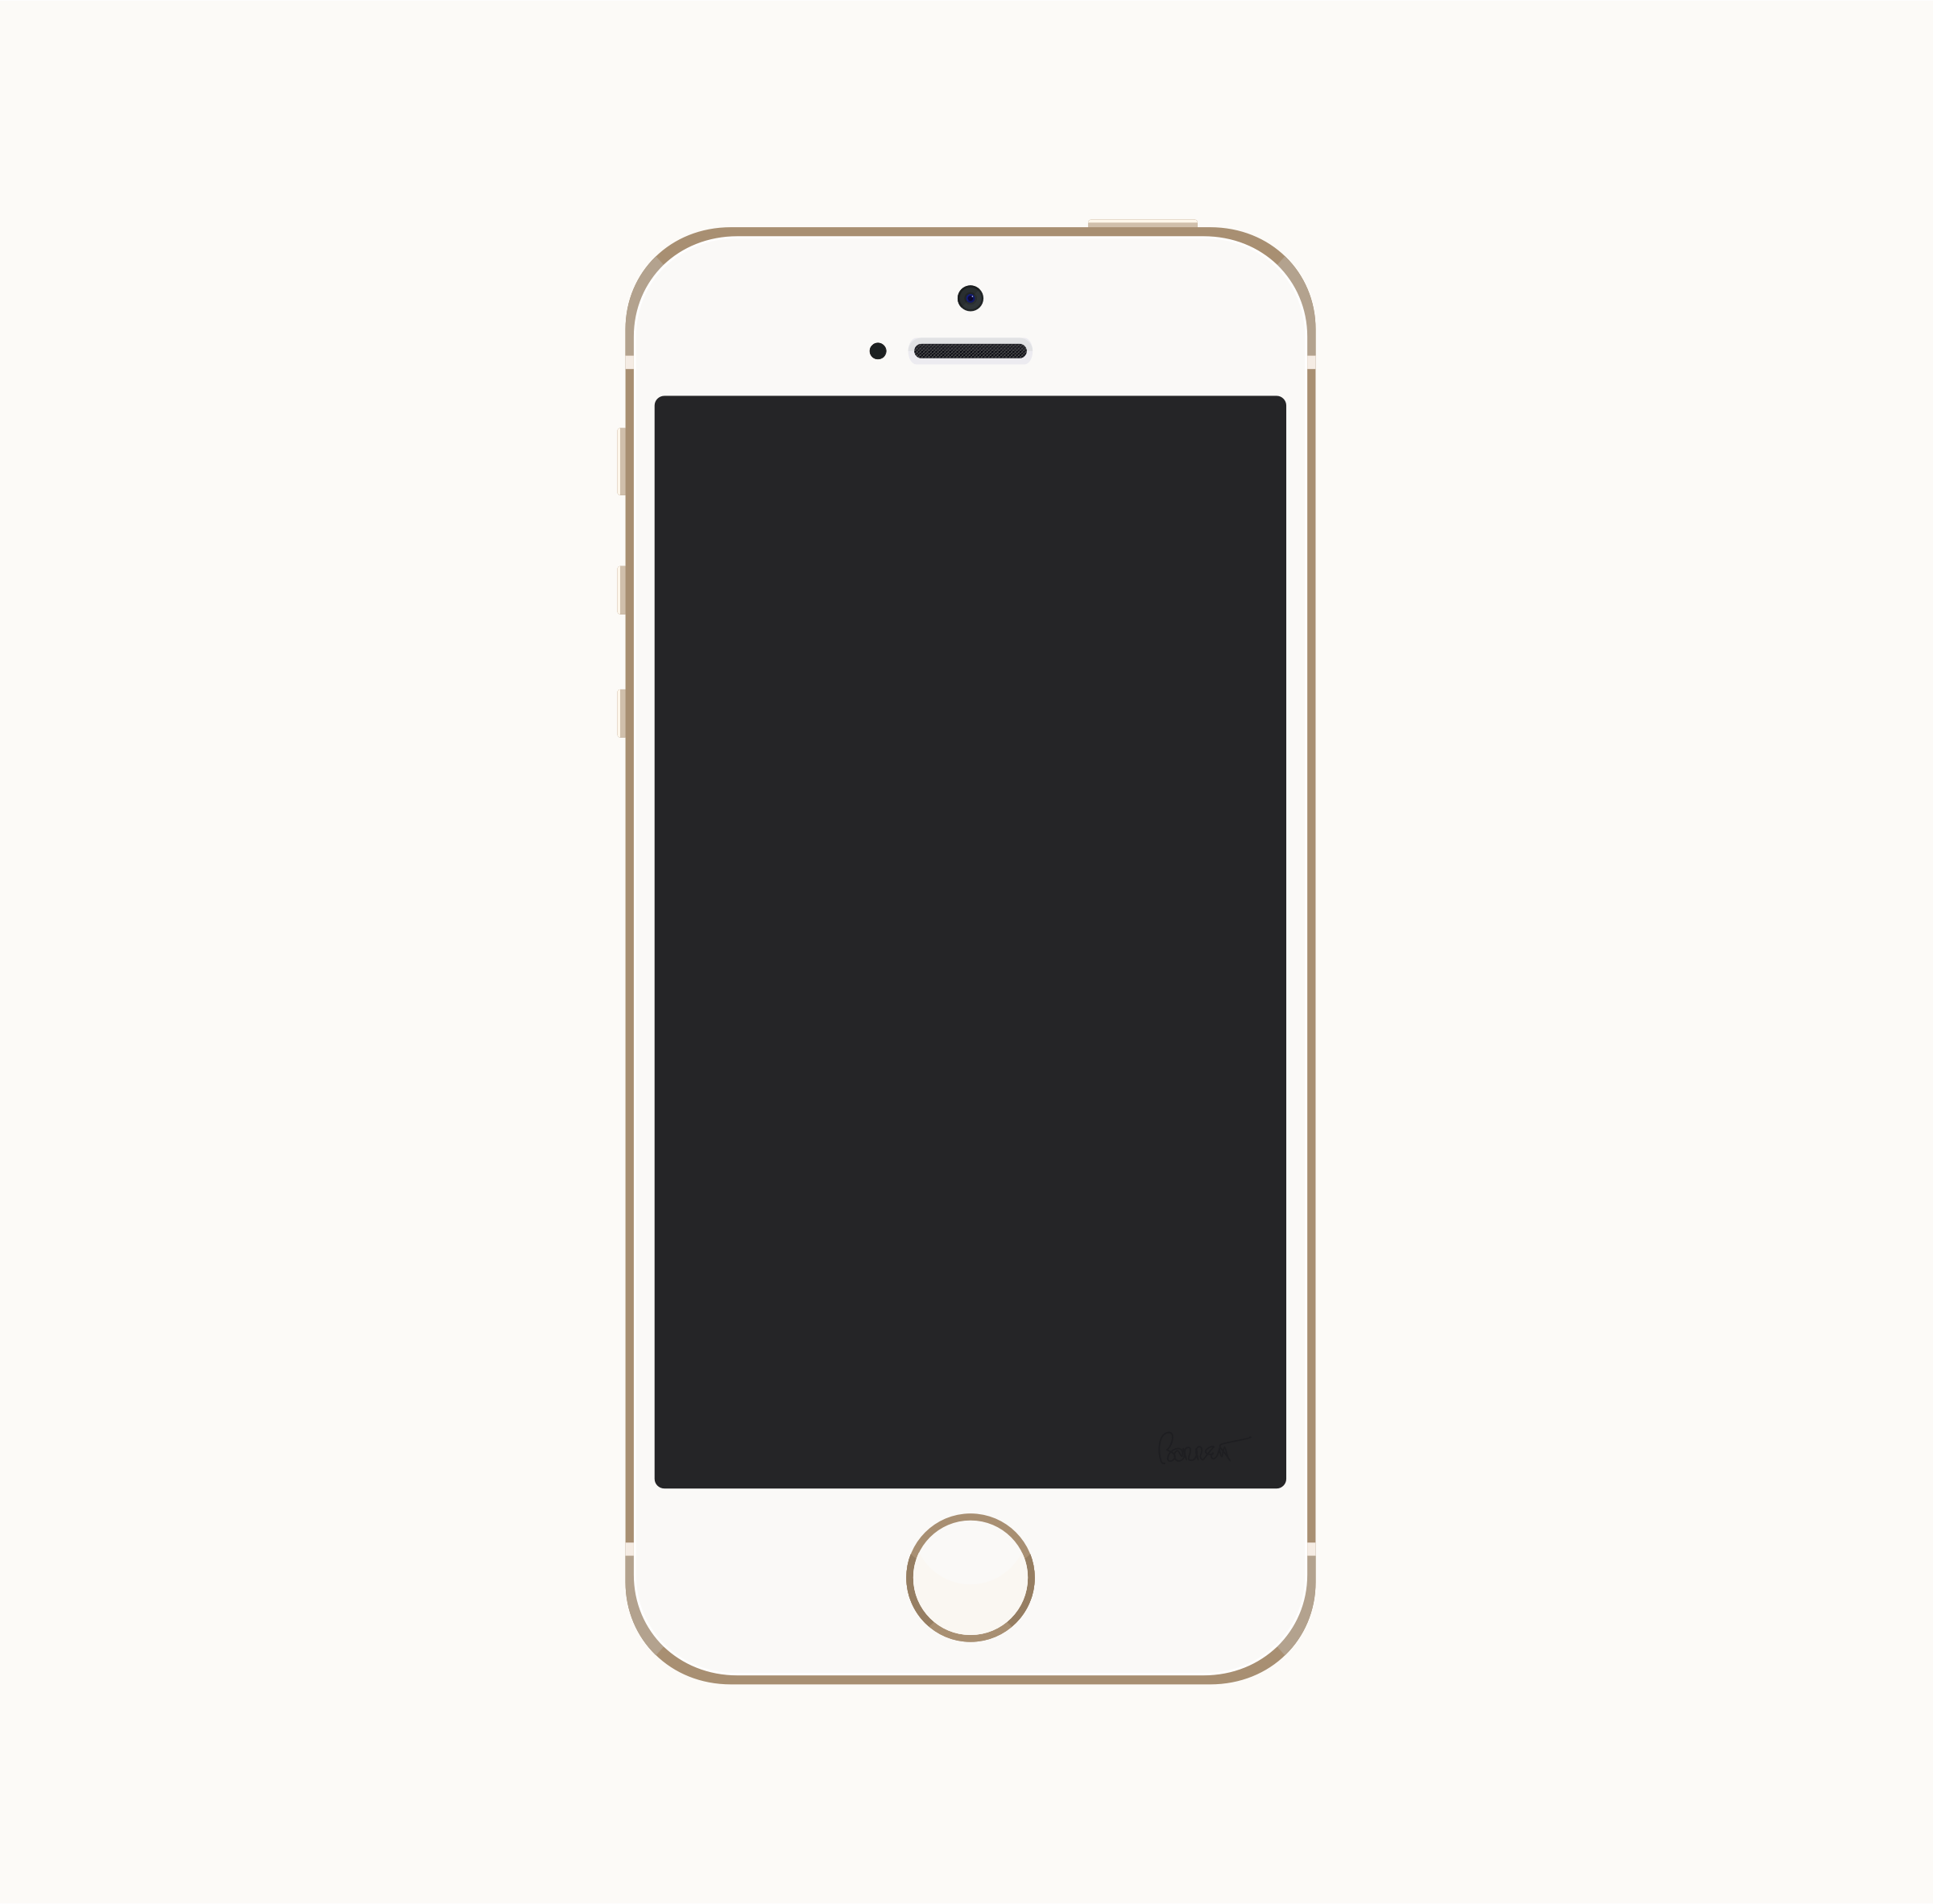 Iphone clipart black and white banner royalty free 32+ Iphone Clip Art | ClipartLook banner royalty free